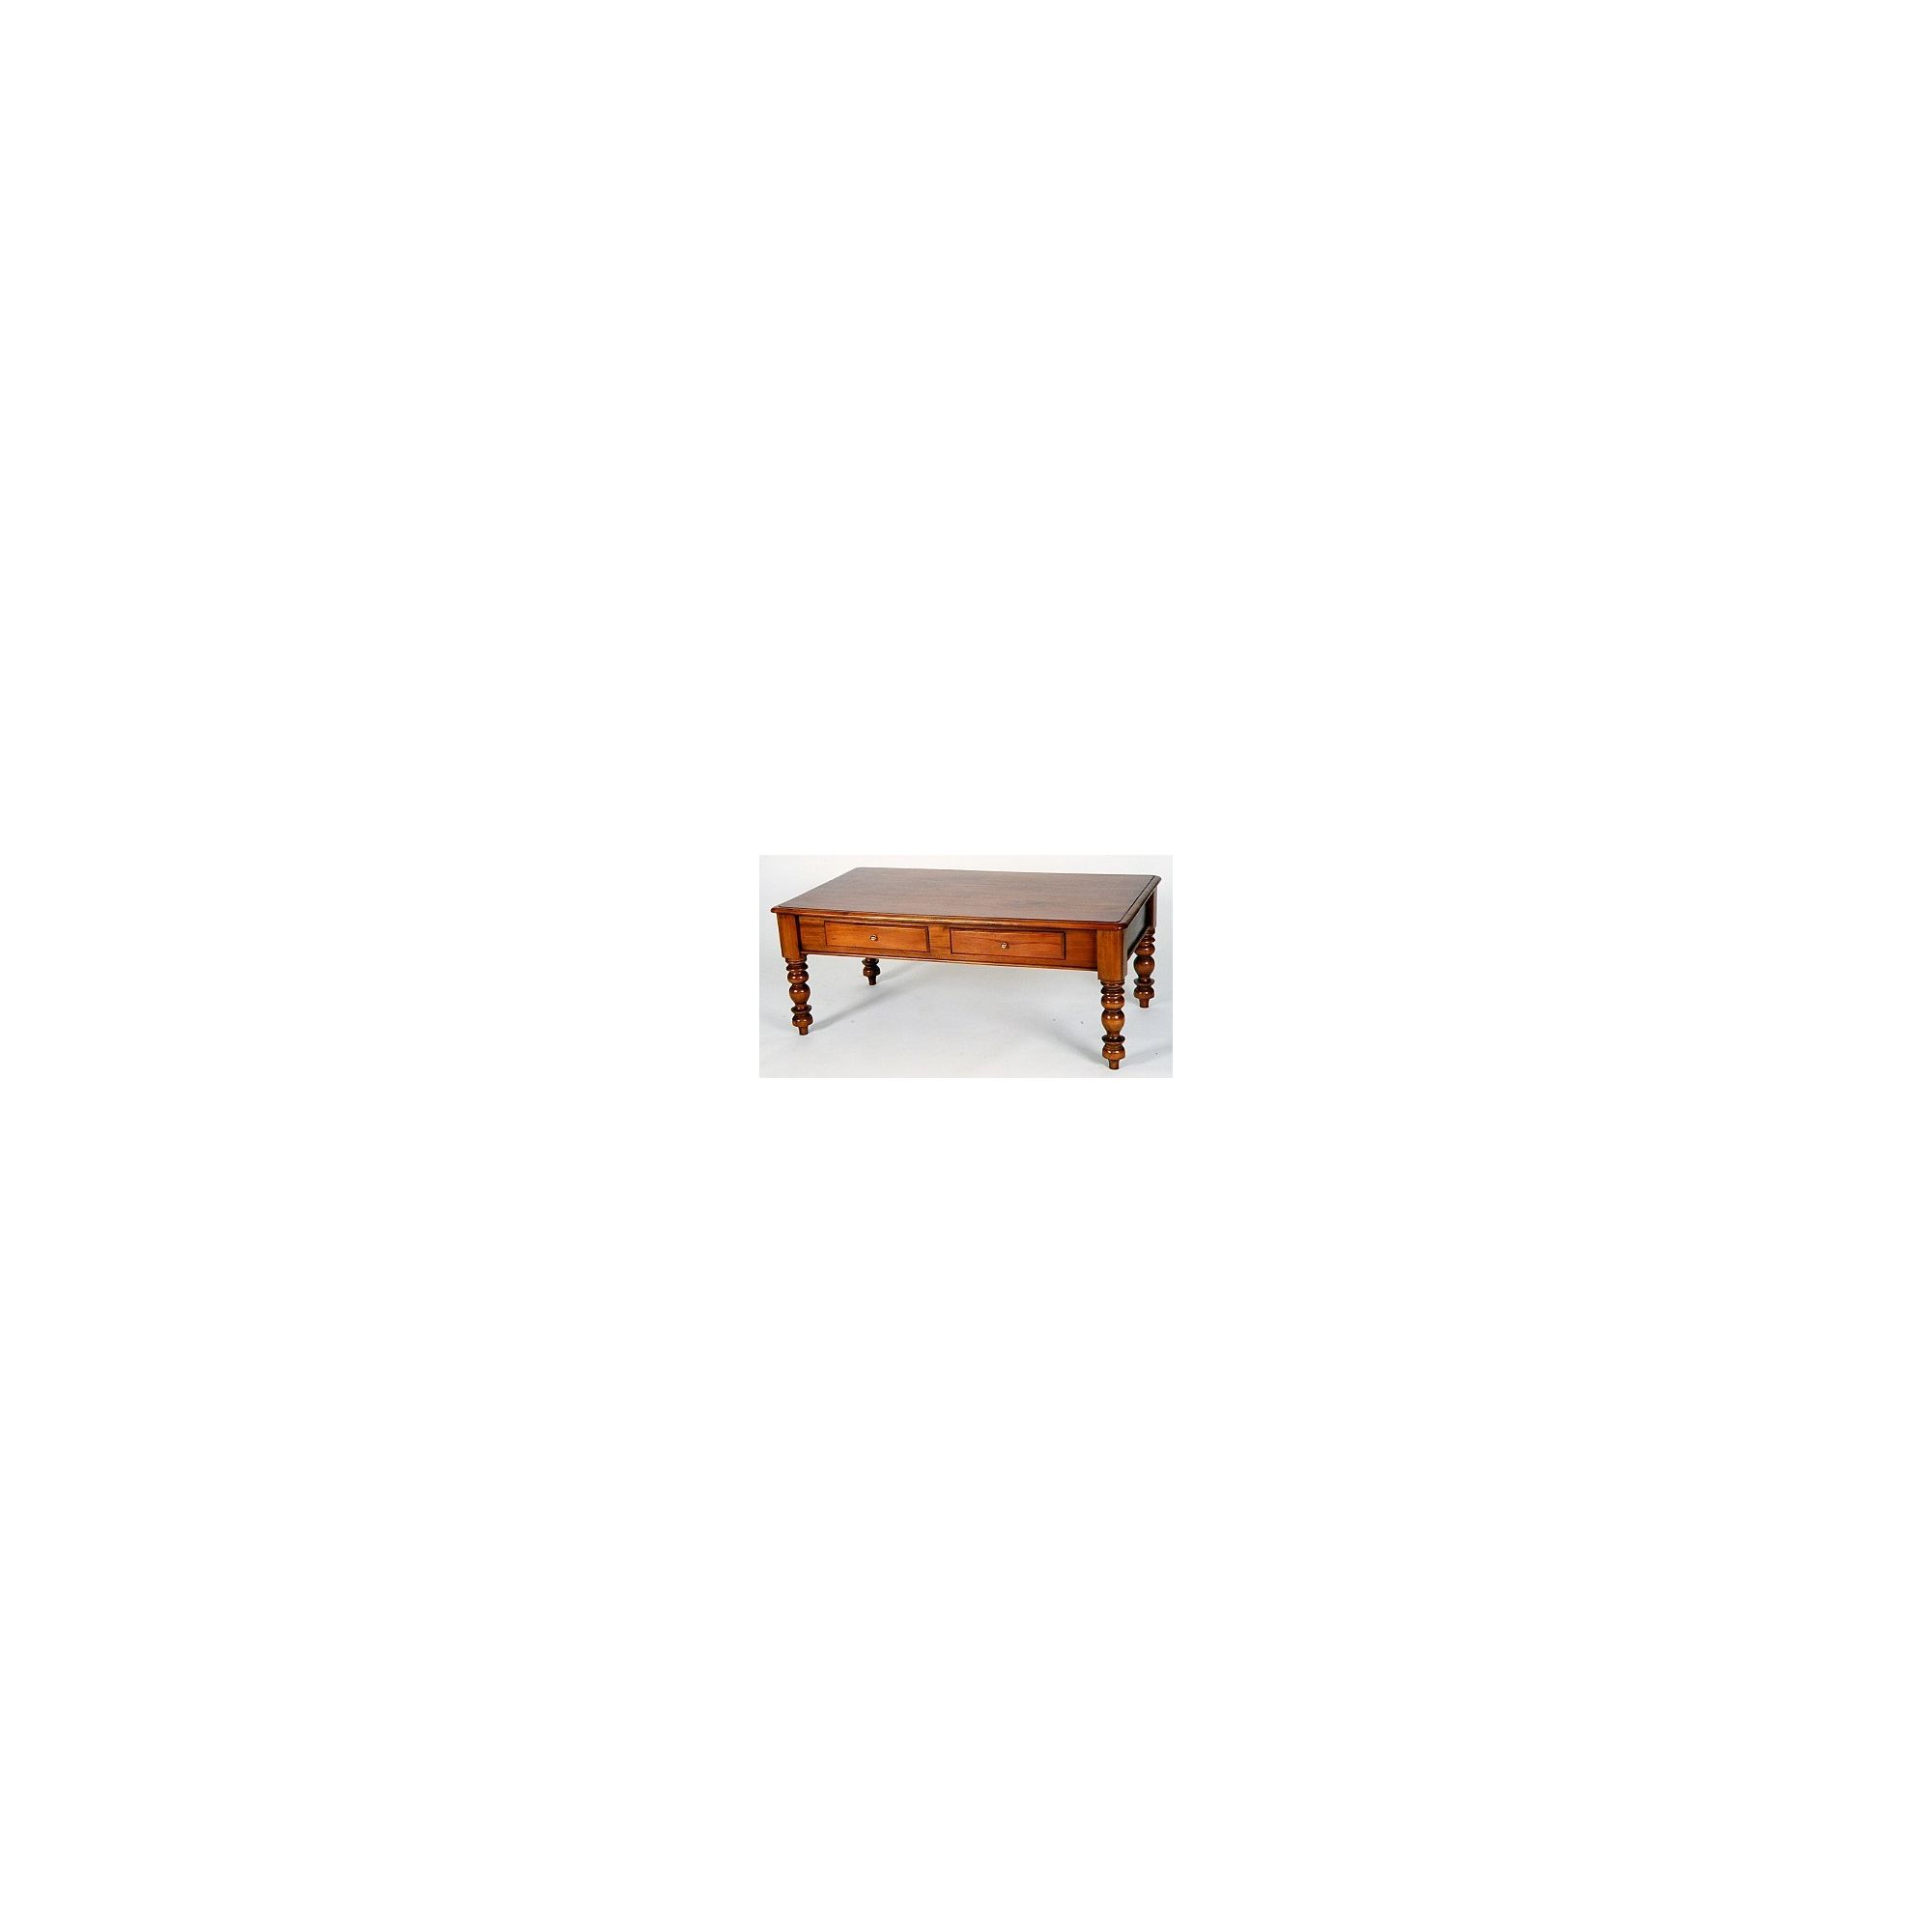 Anderson Bradshaw Colonial Coffee Table in Mahogany at Tesco Direct